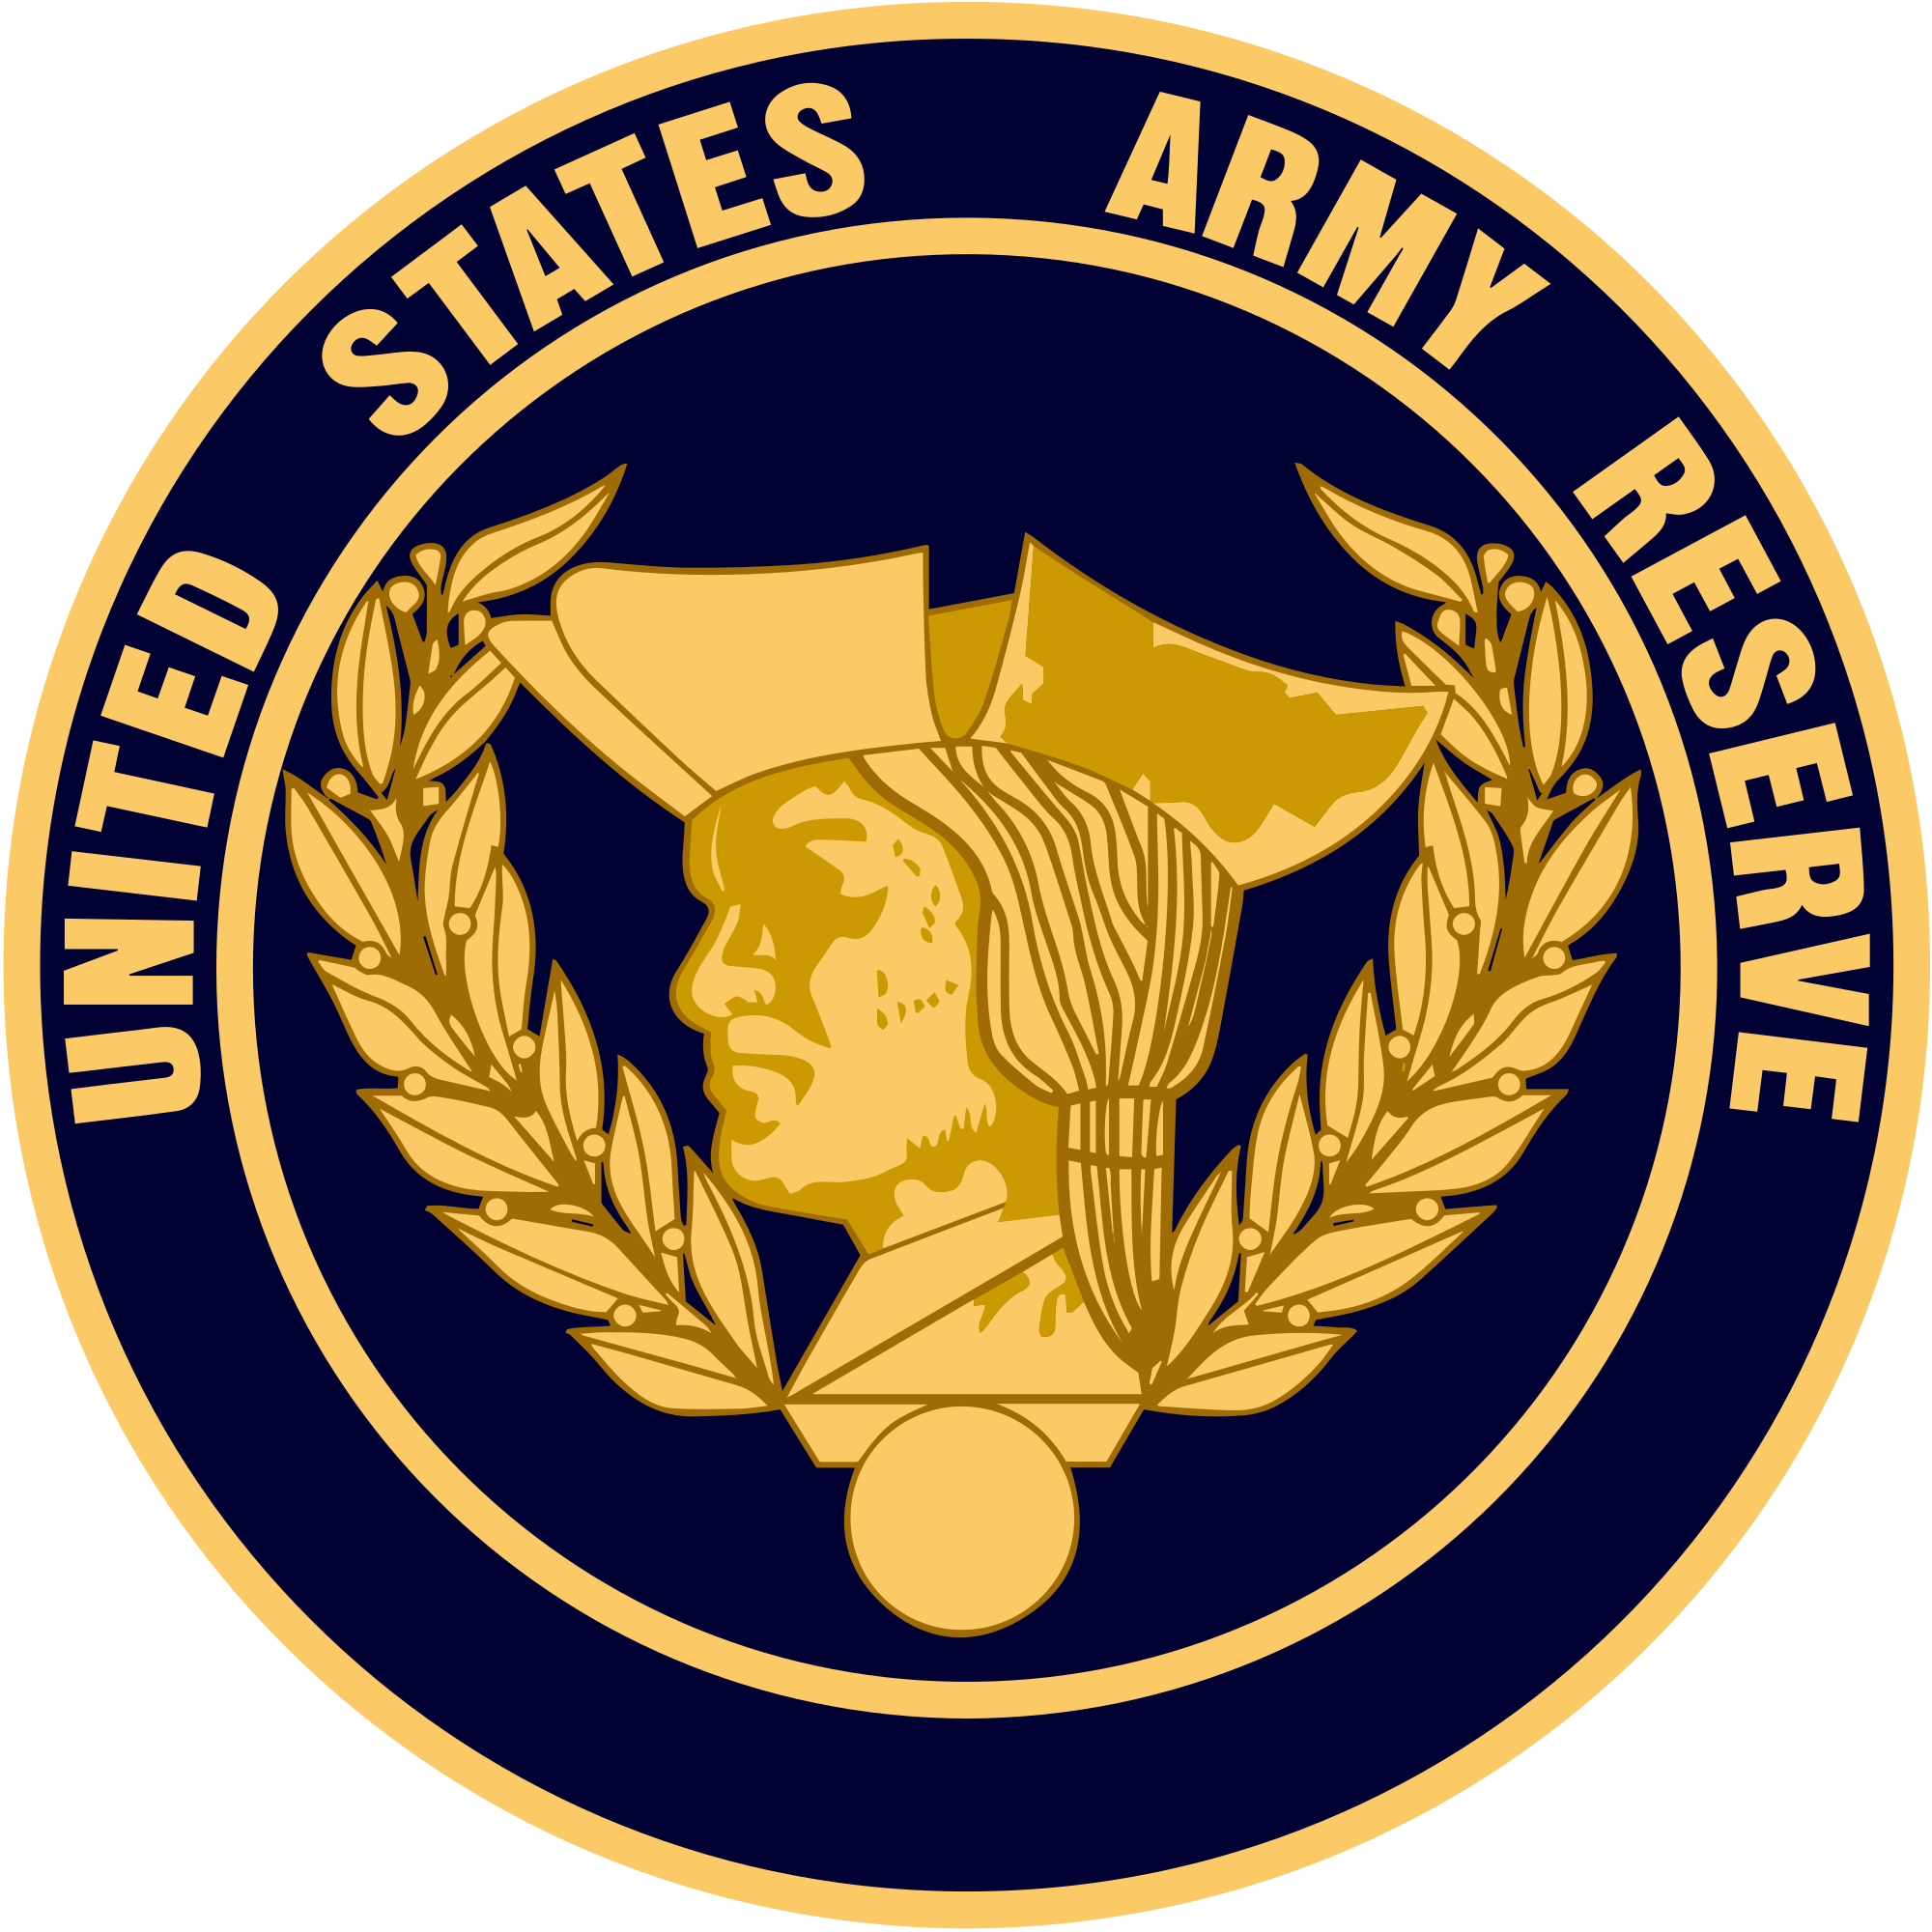 Us army logo png. File seal of the